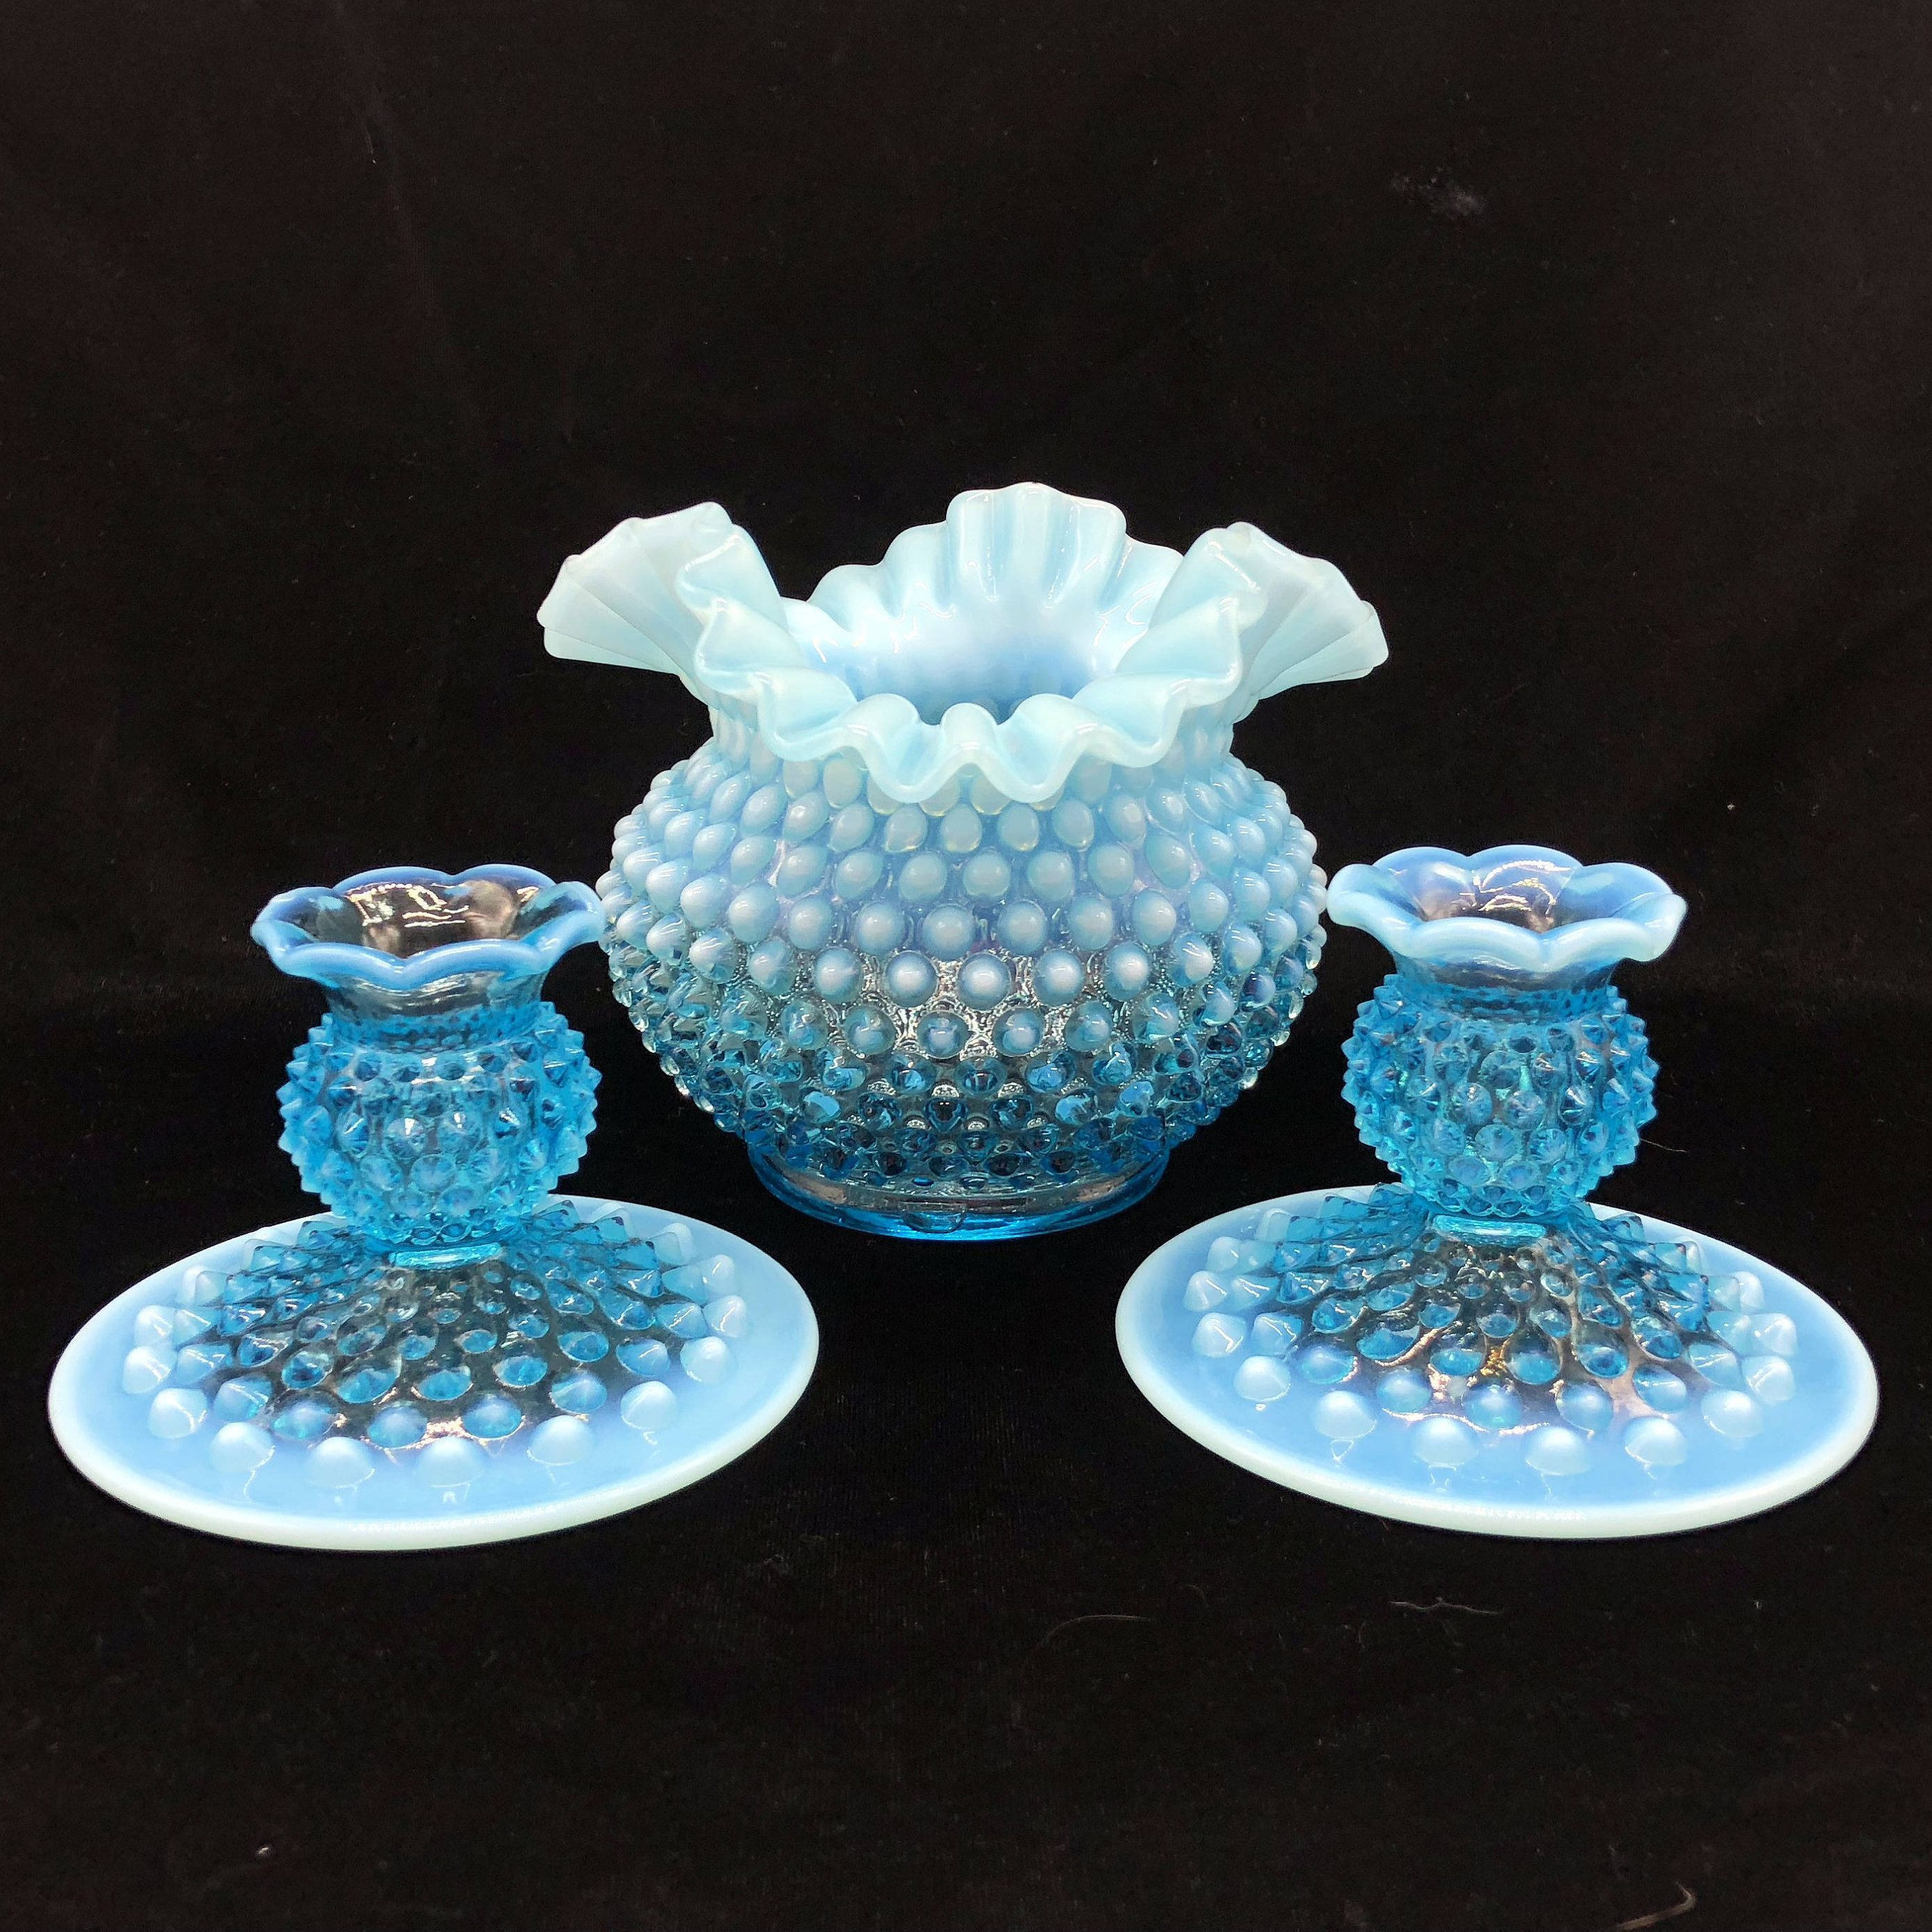 colored glass vases and bowls of 37 fenton blue glass vase the weekly world pertaining to fenton hobnail glass centerpiece set blue opalescent vase candle